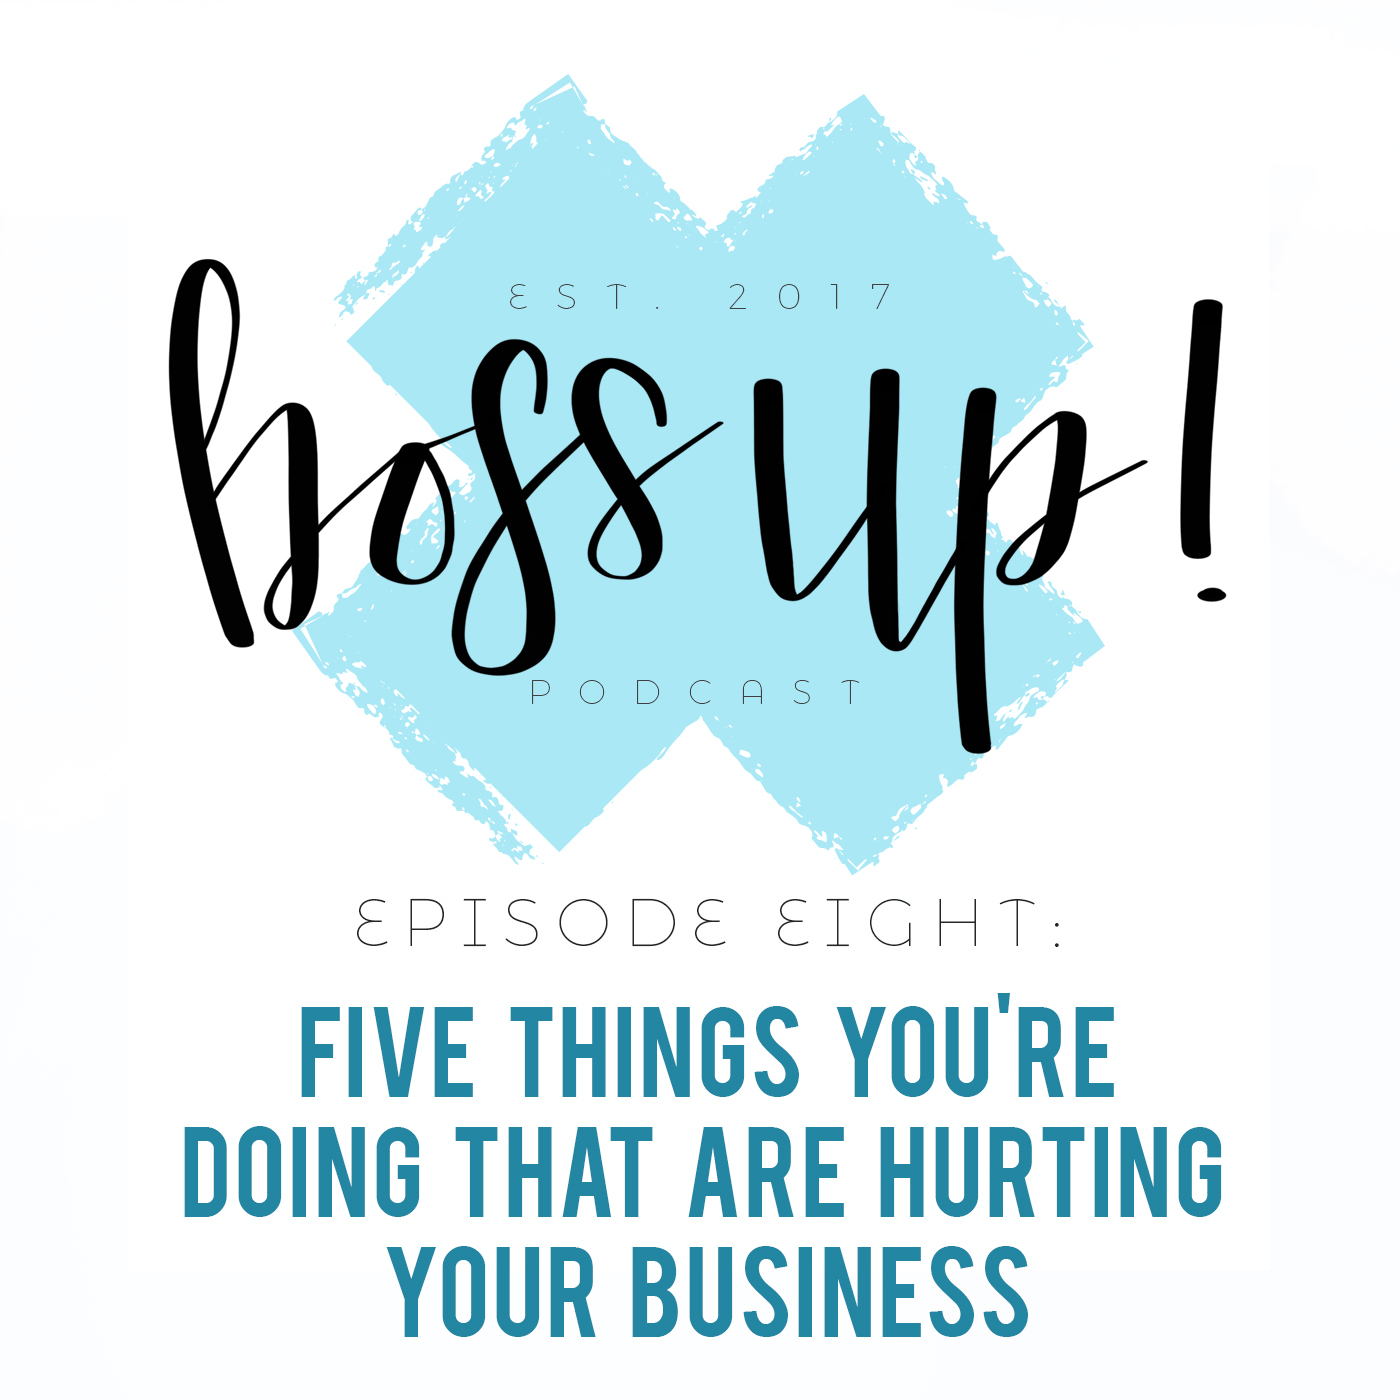 008: Five Things You Are Doing to Hurt Your Business